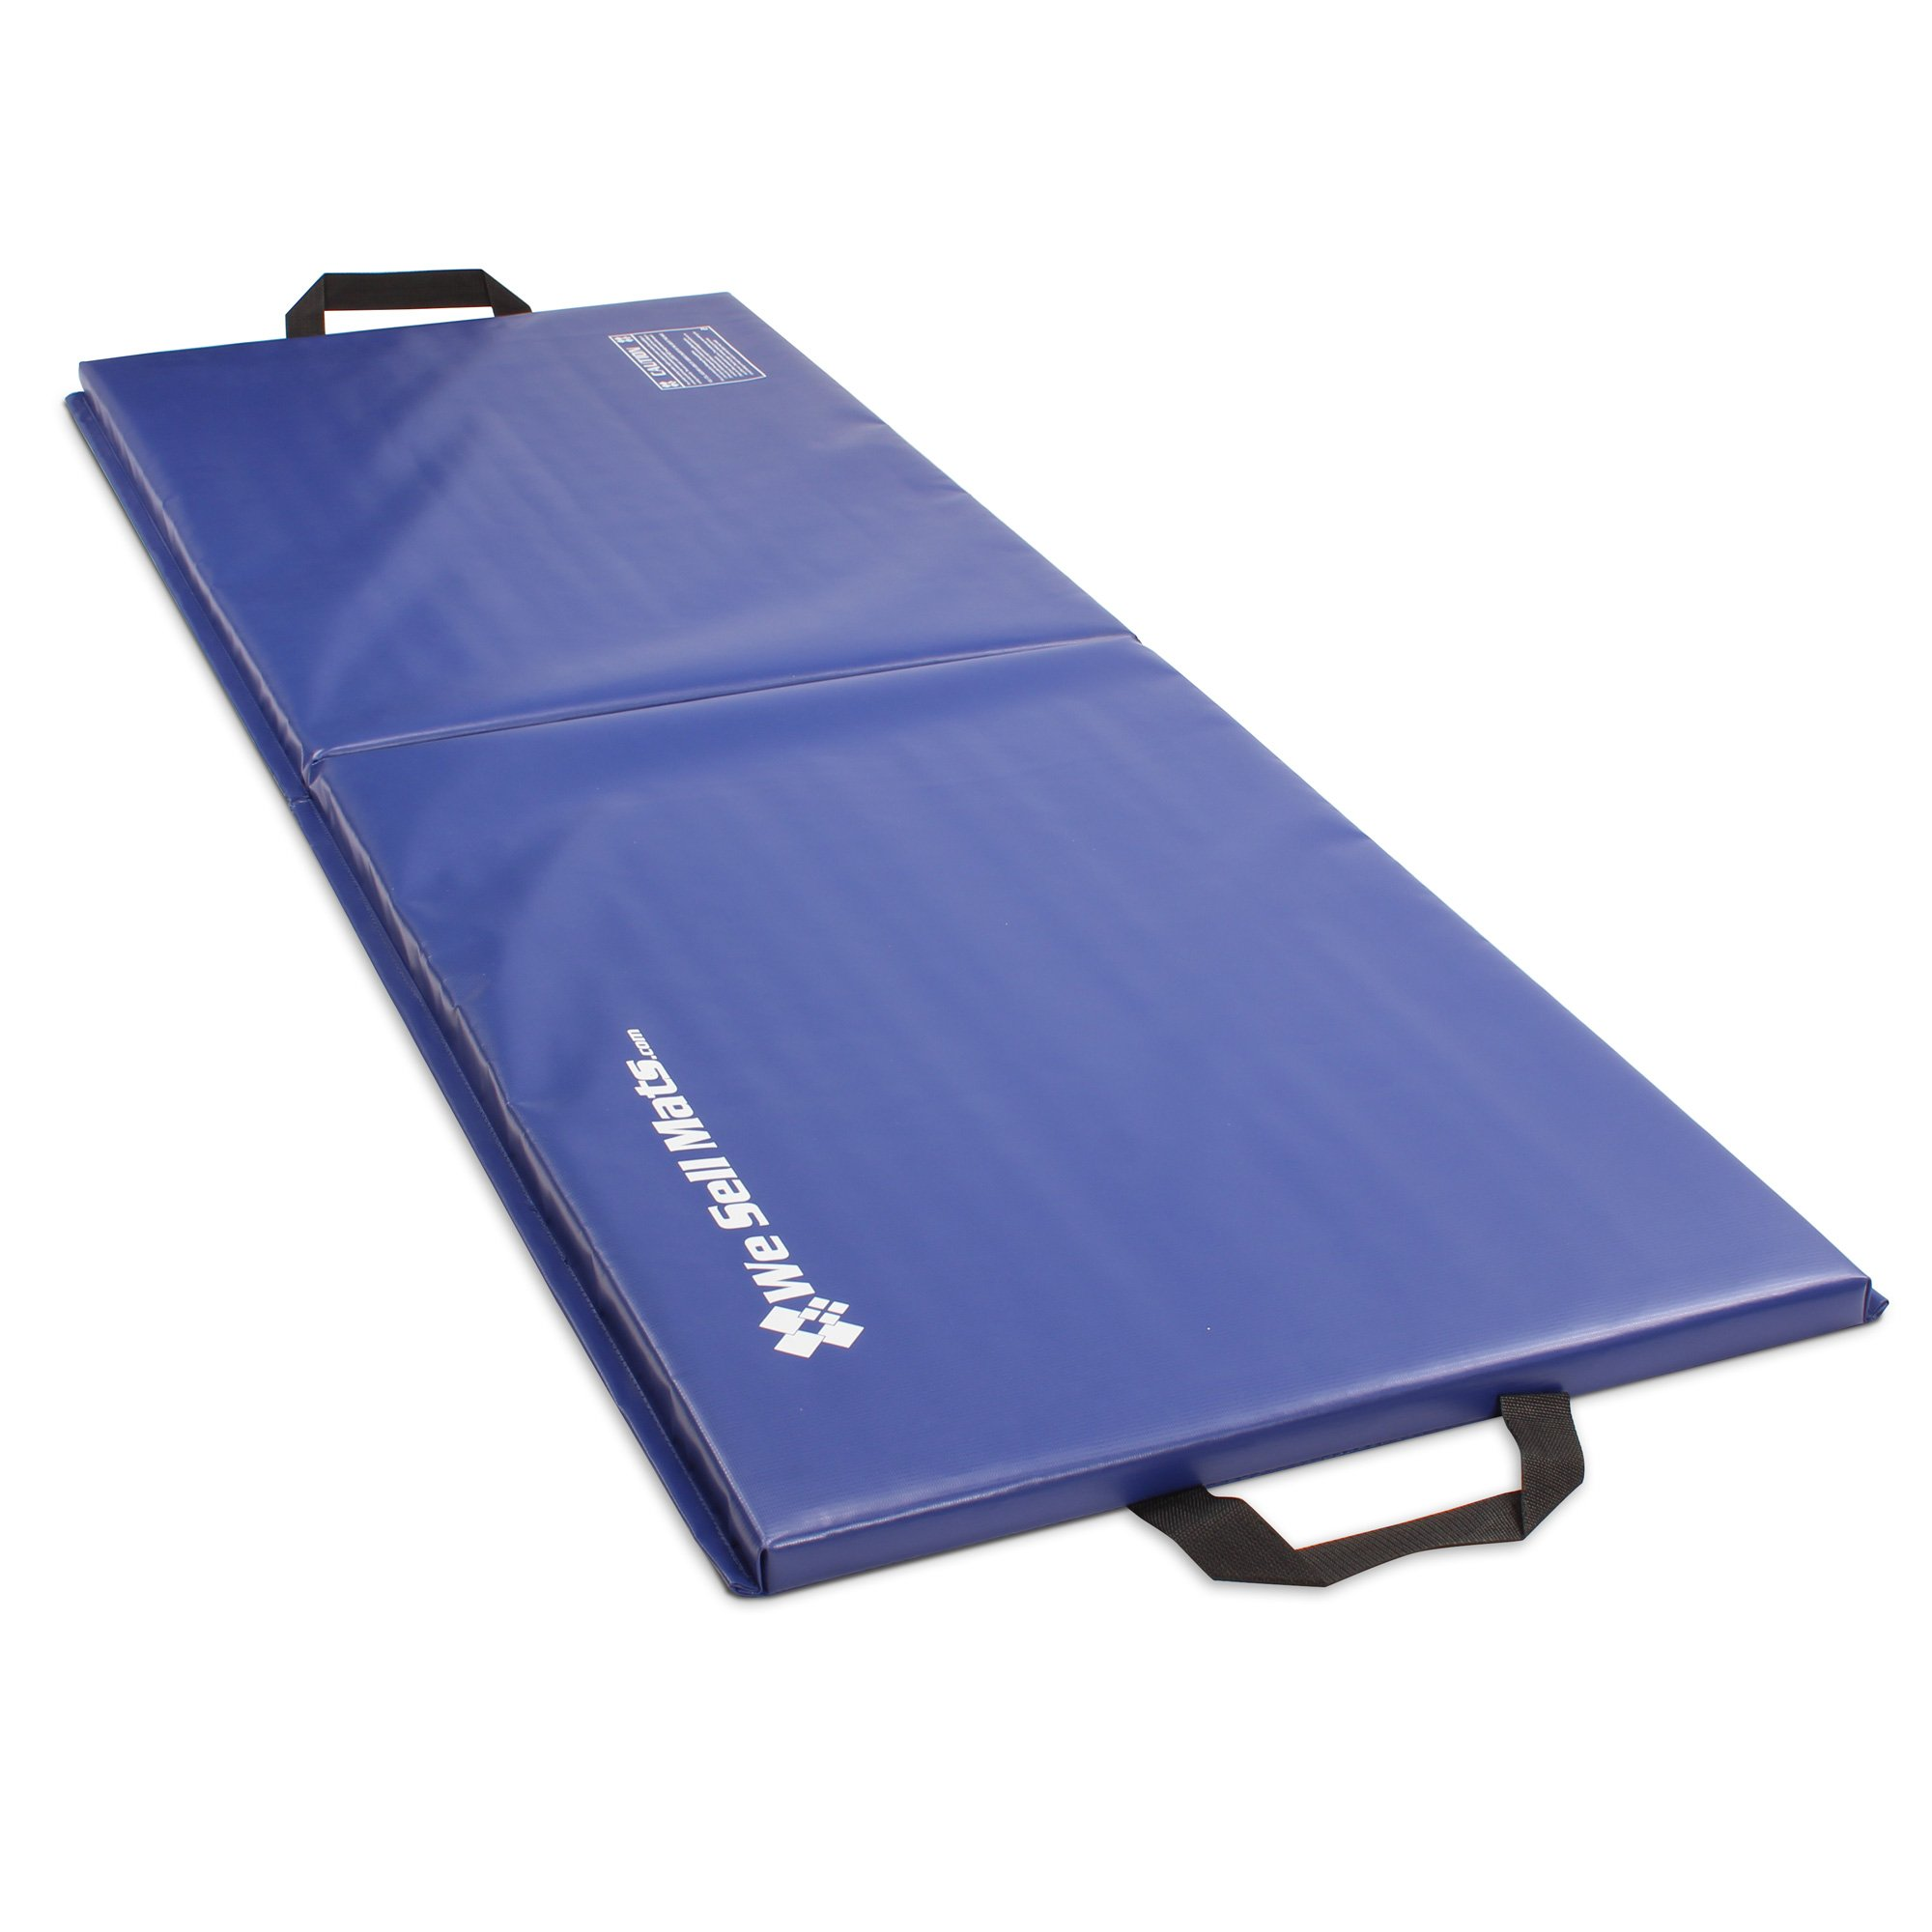 We Sell Mats 2x6 Folding Exercise Mat, Blue